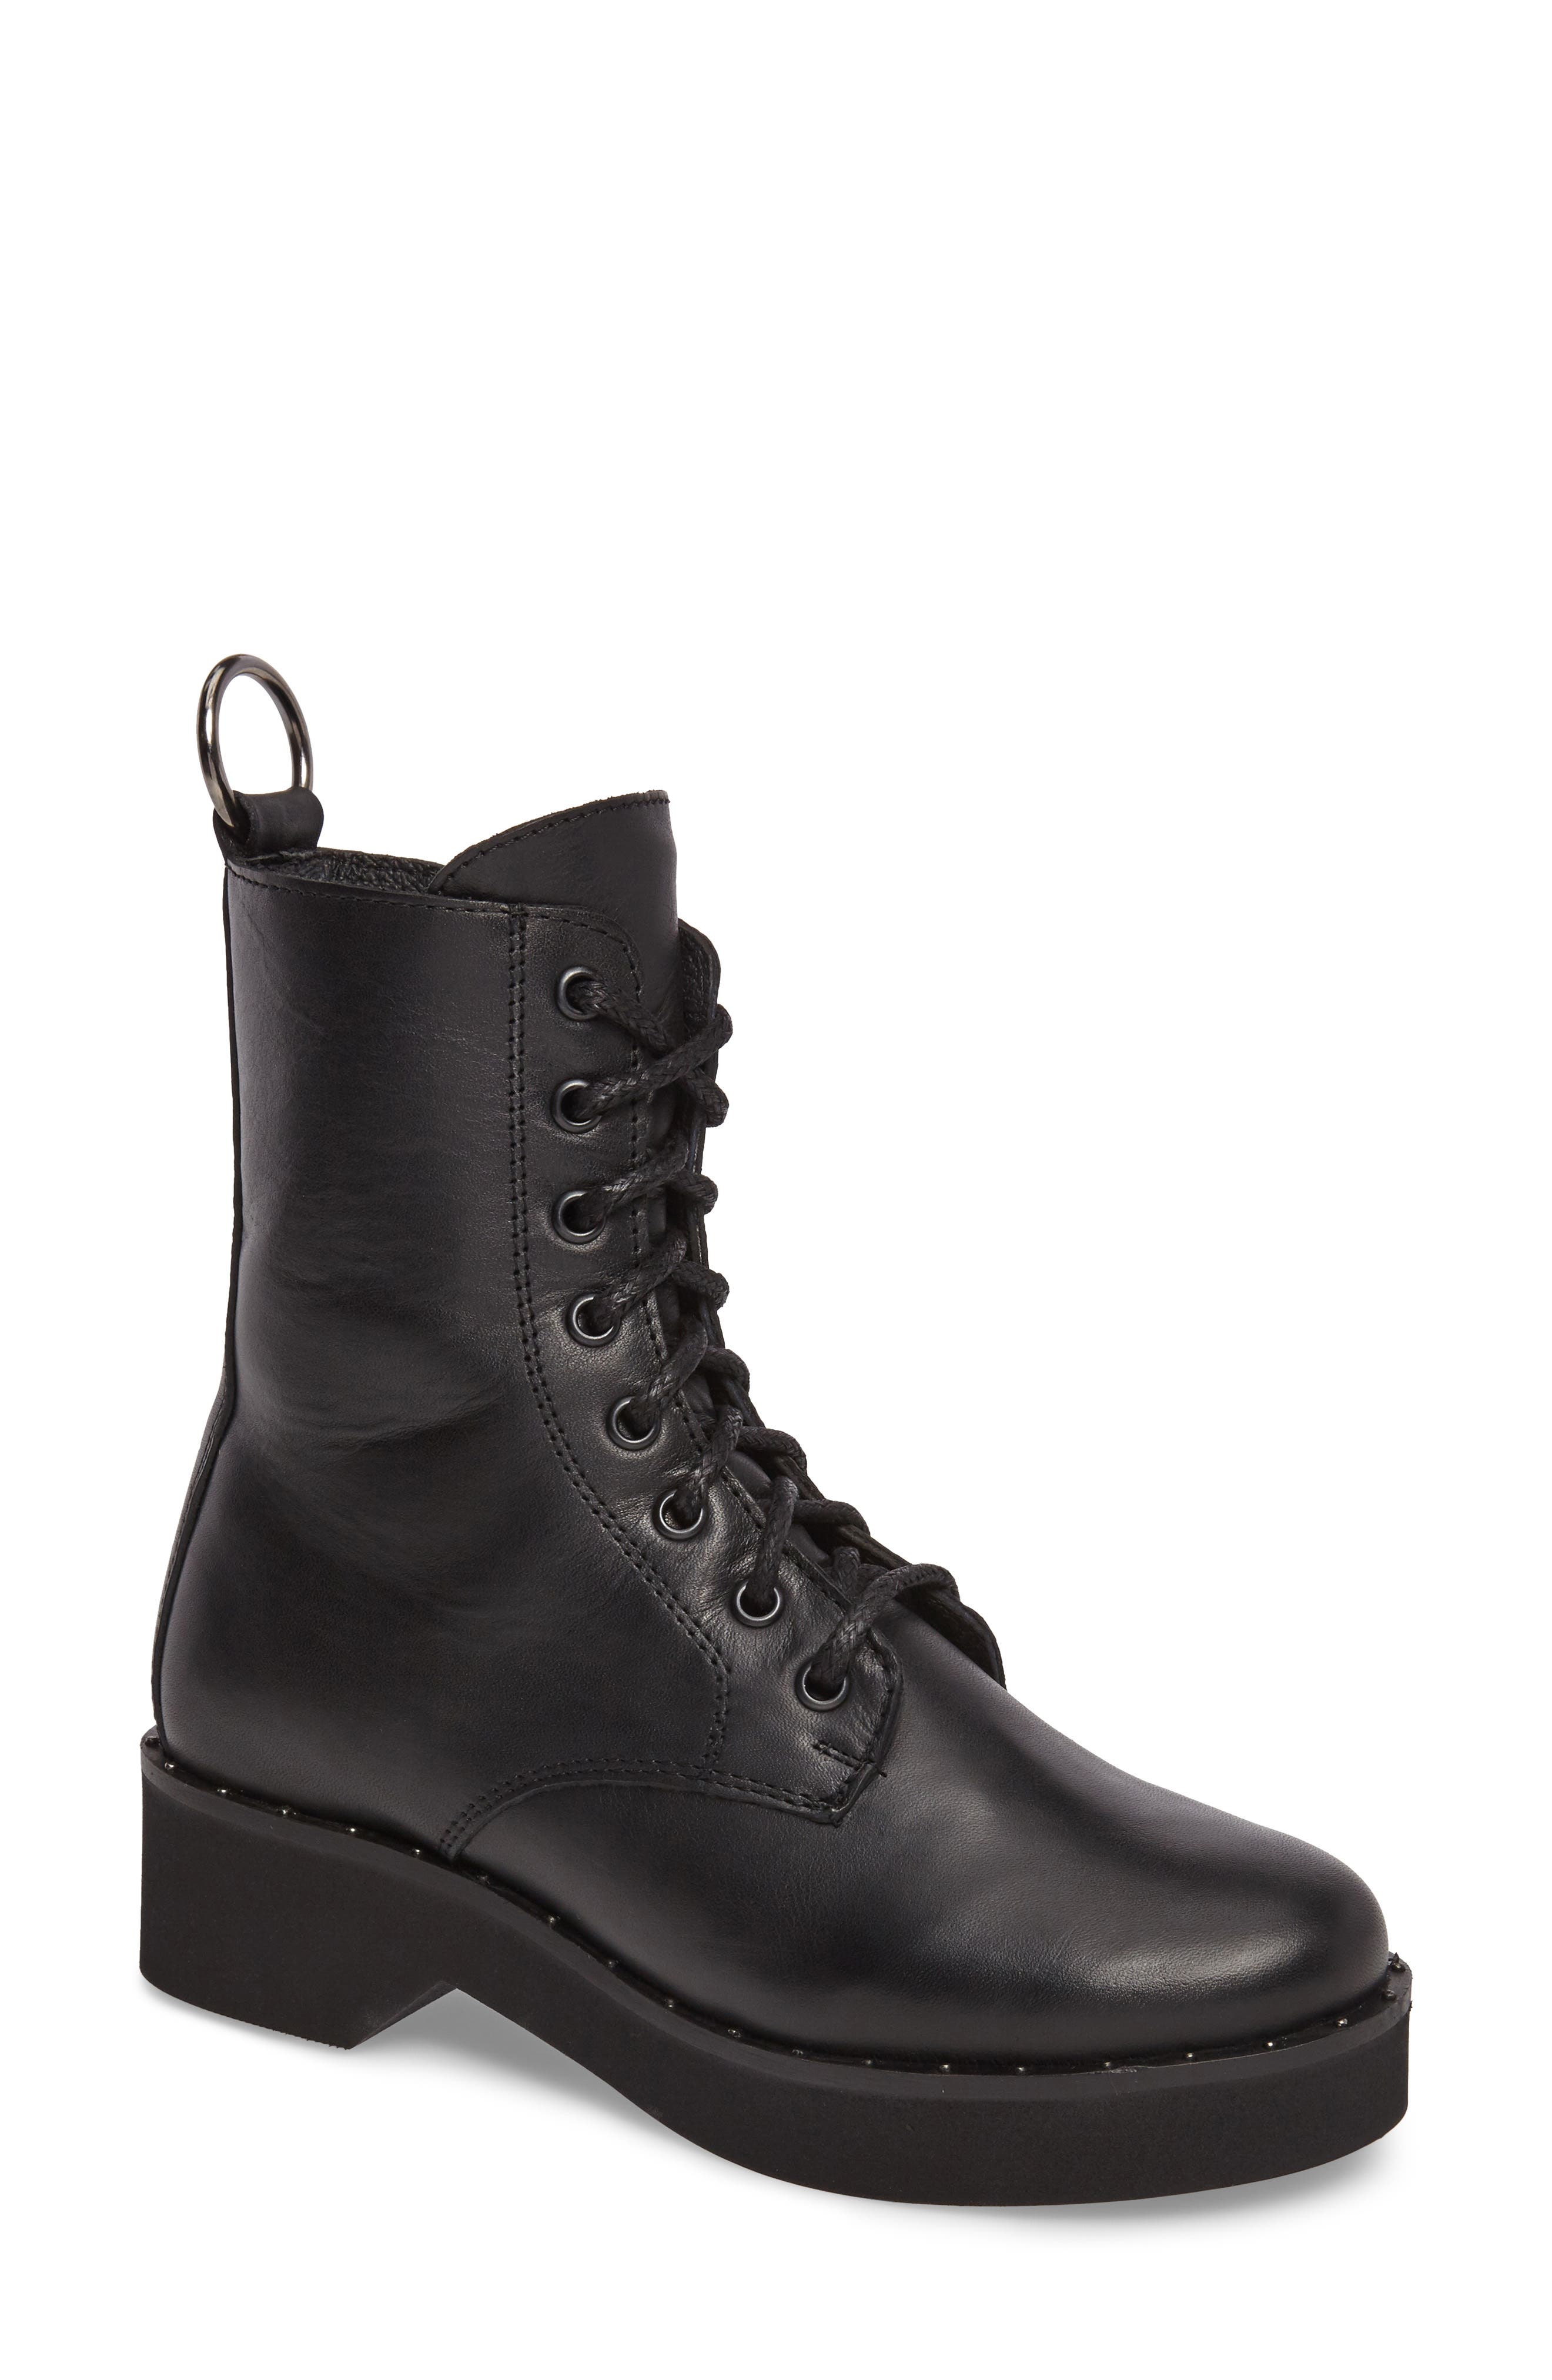 Rocco Combat Boot,                         Main,                         color, Black Leather